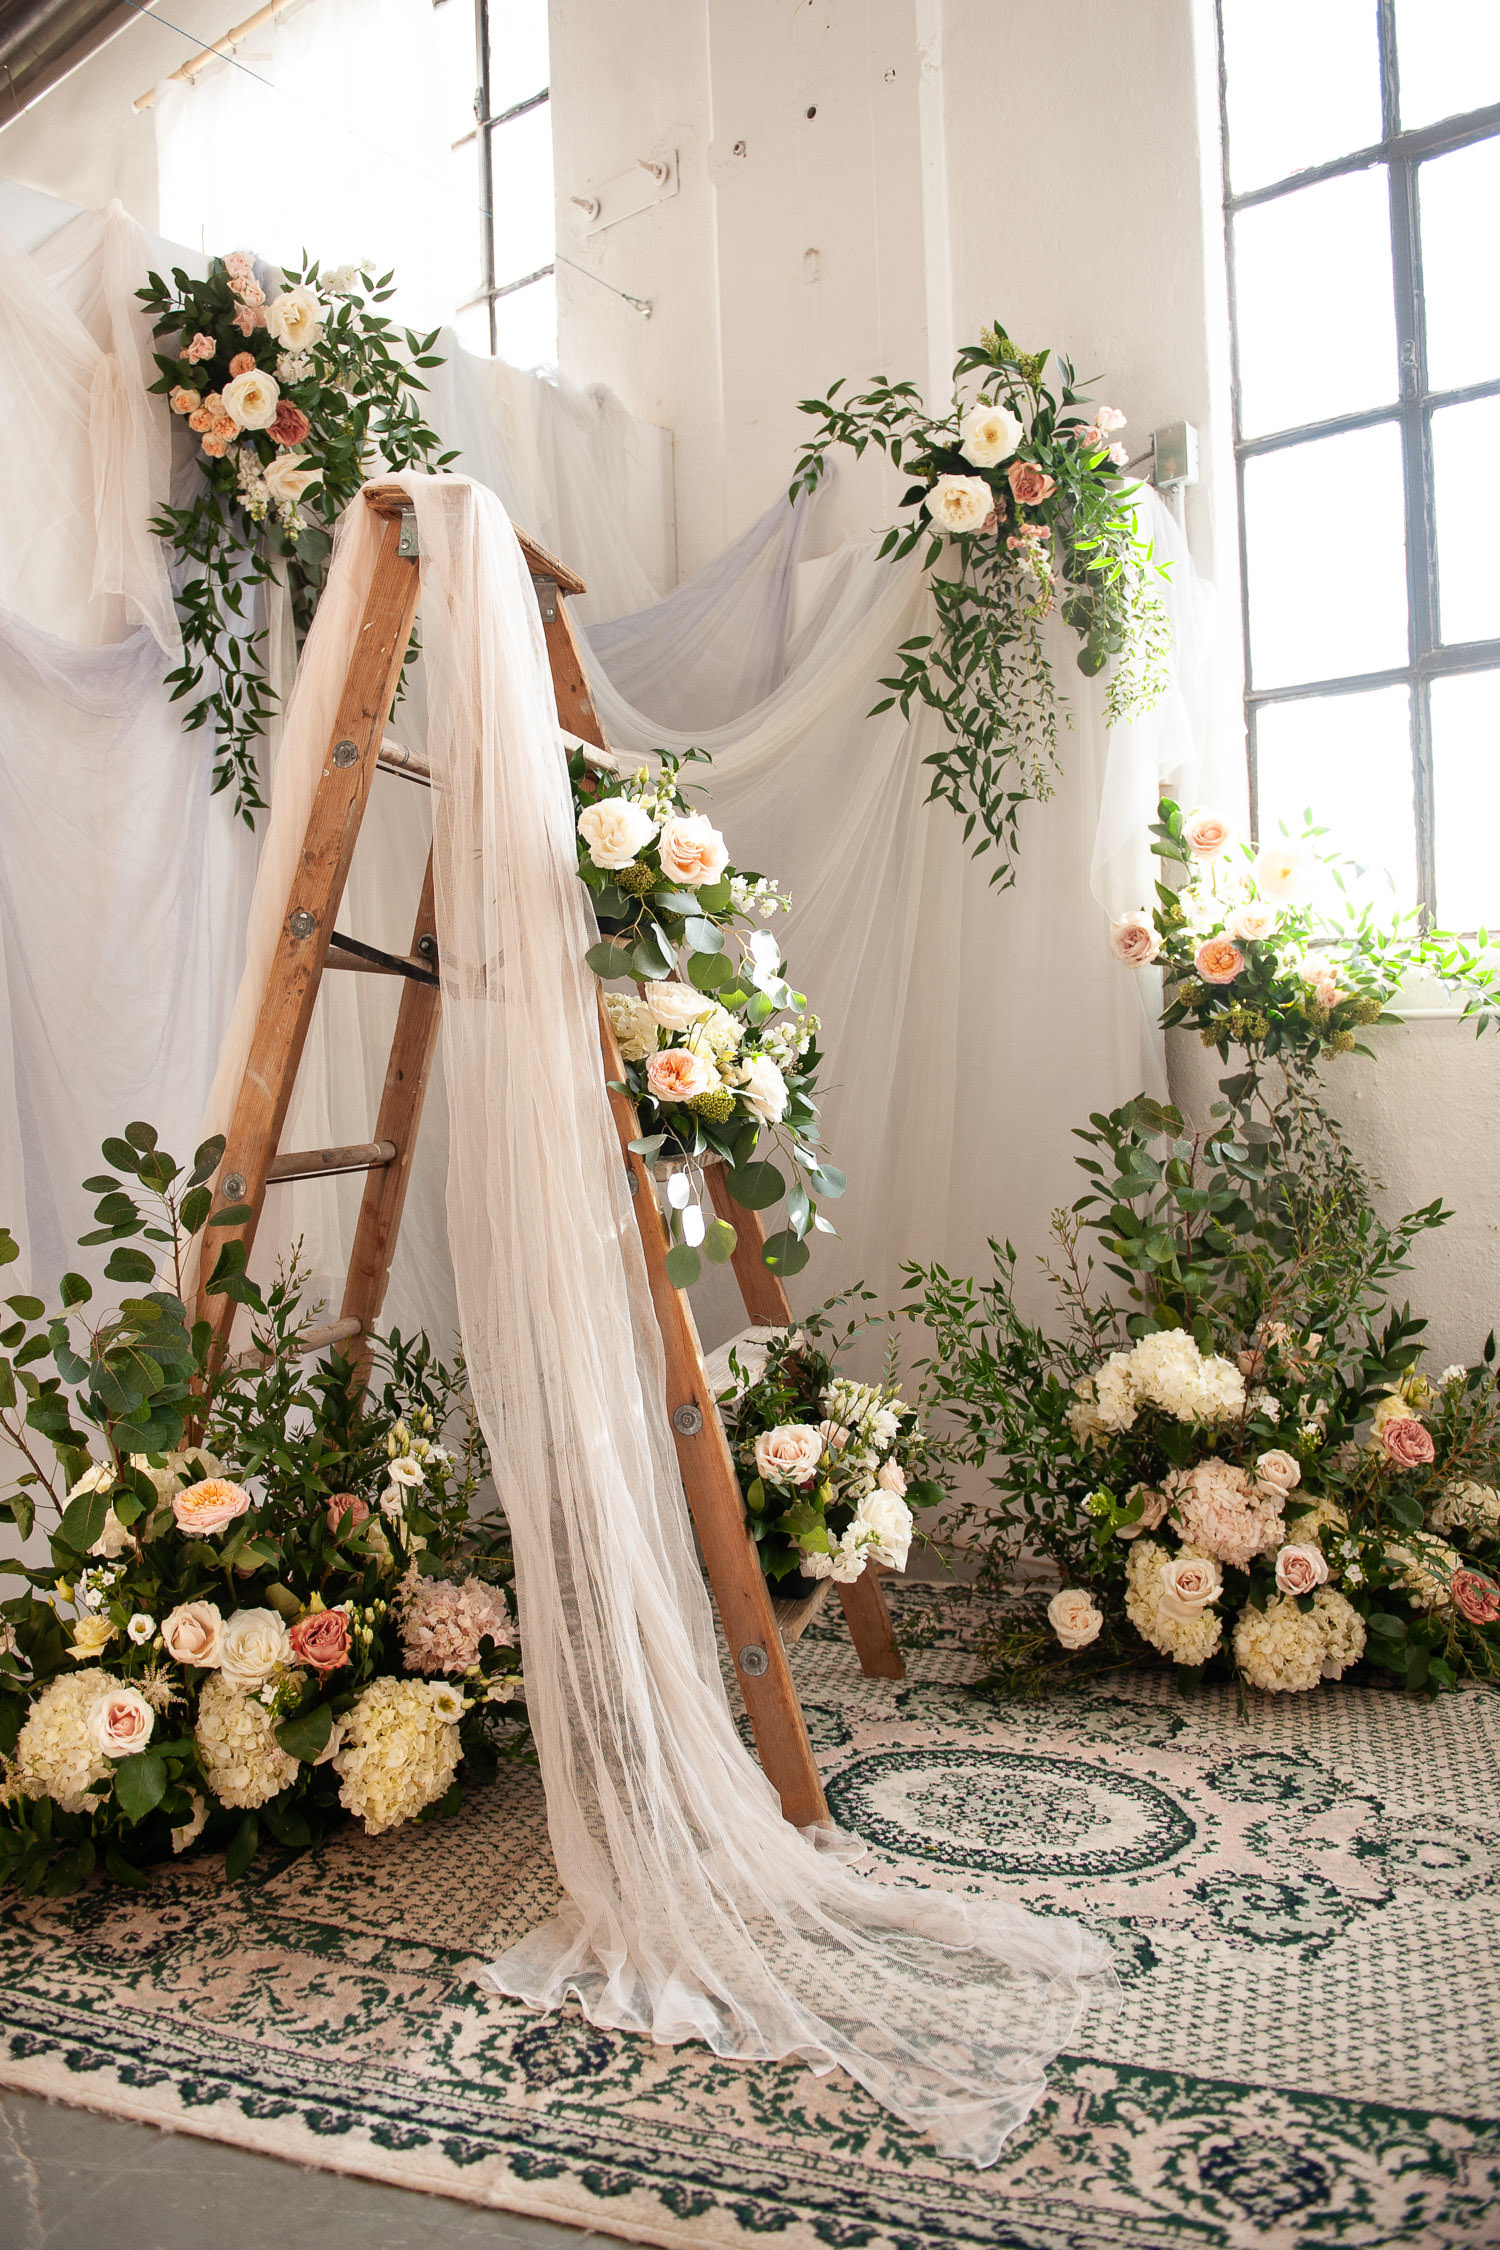 Vintage ladder adorned with flowers captured by Tara Whittaker Photography